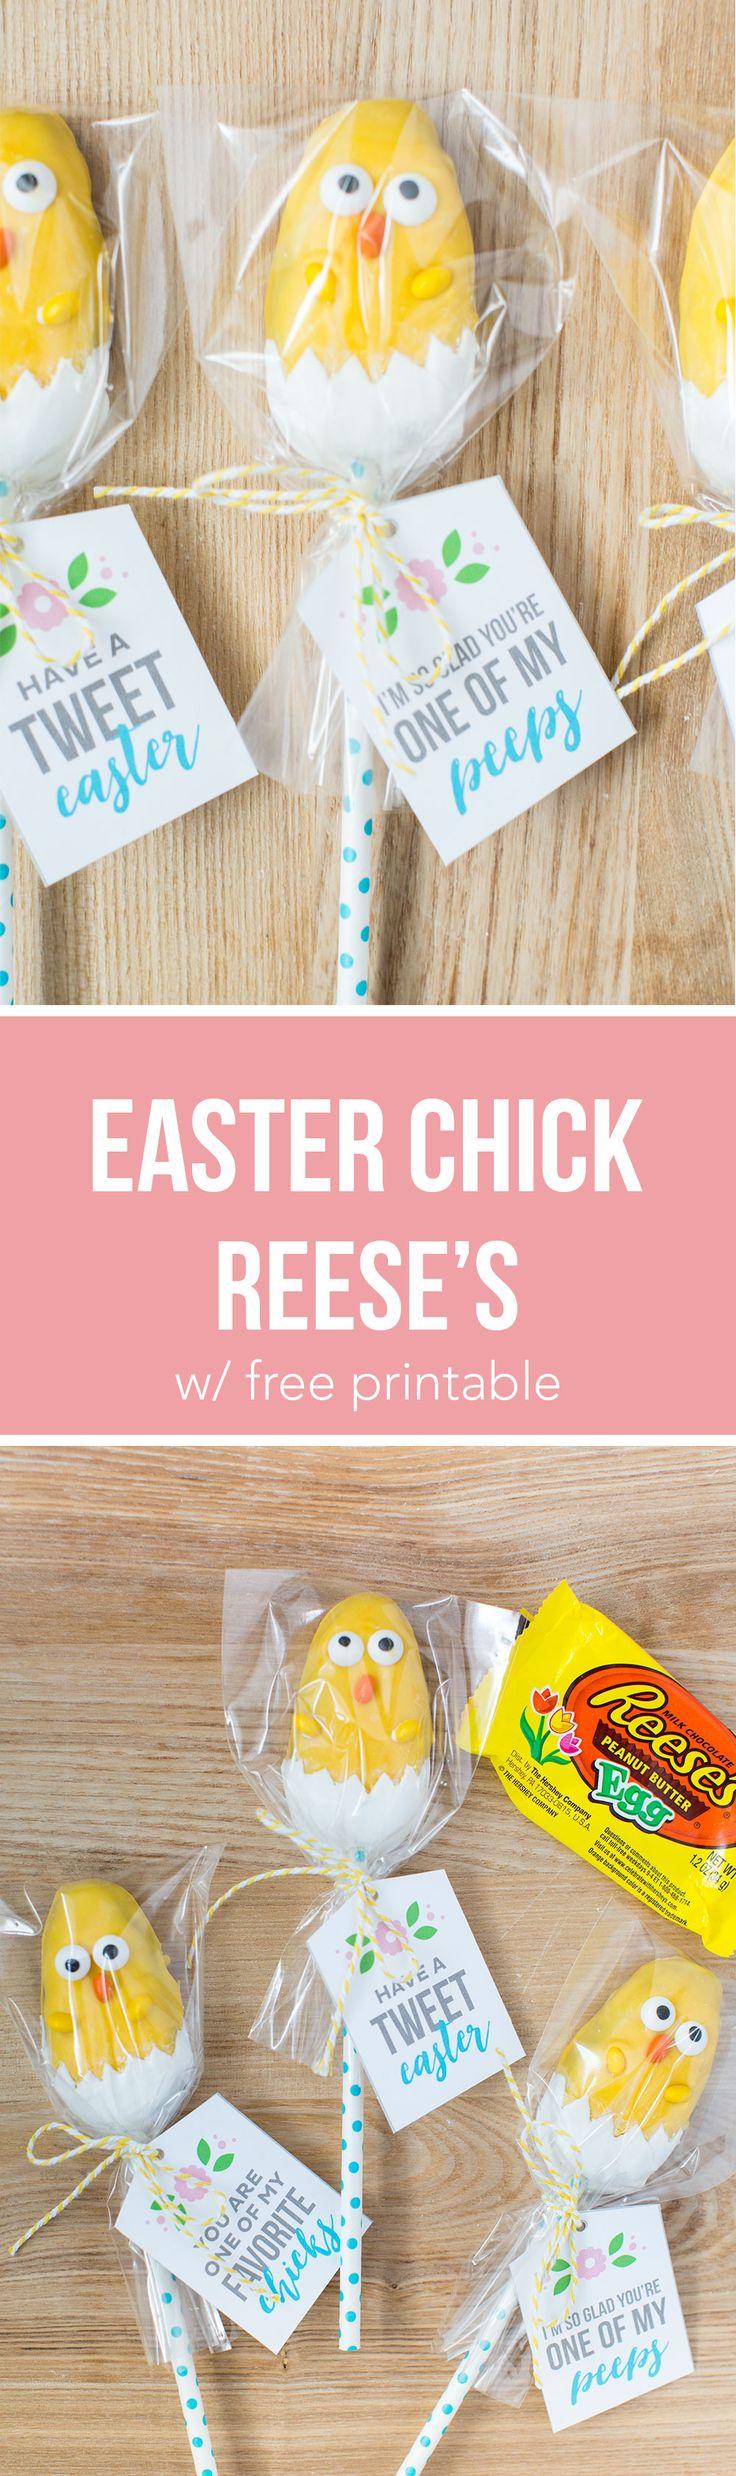 538 best easter ideas images on pinterest spring at home and easter chick treats the most adorable candy chicks made from a reeses egg these are so easy to make and the kids will love helping make these cuties negle Choice Image